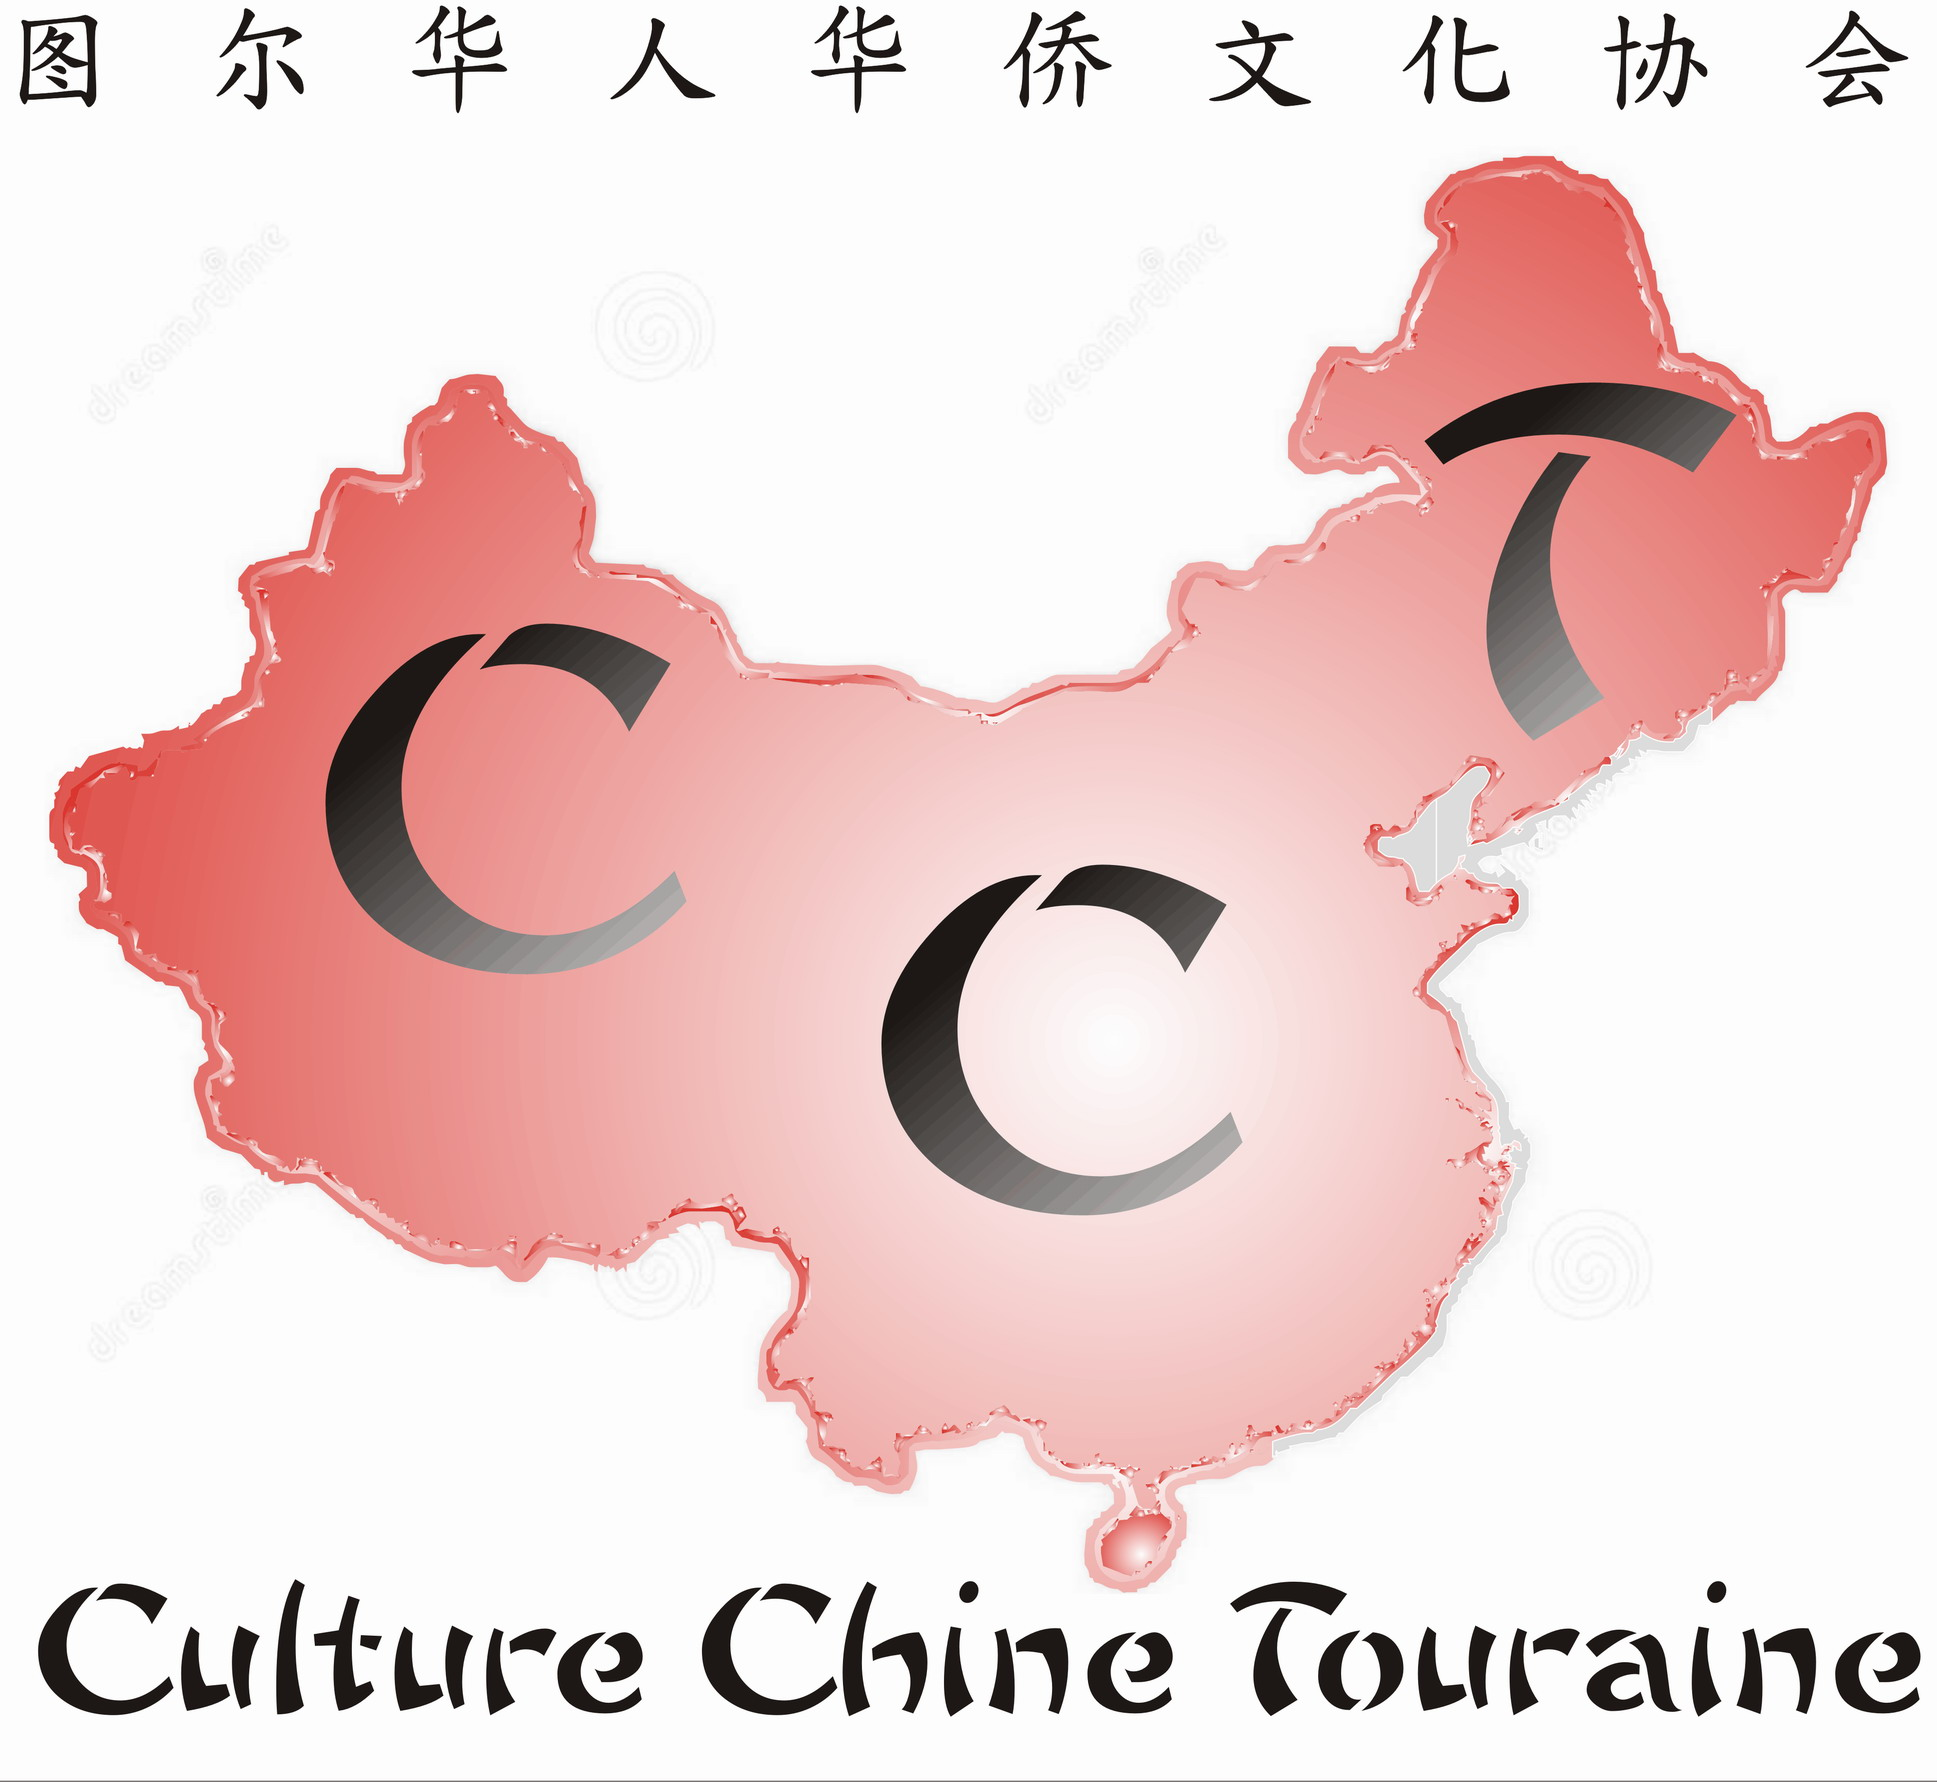 Association - Culture Chine Touraine